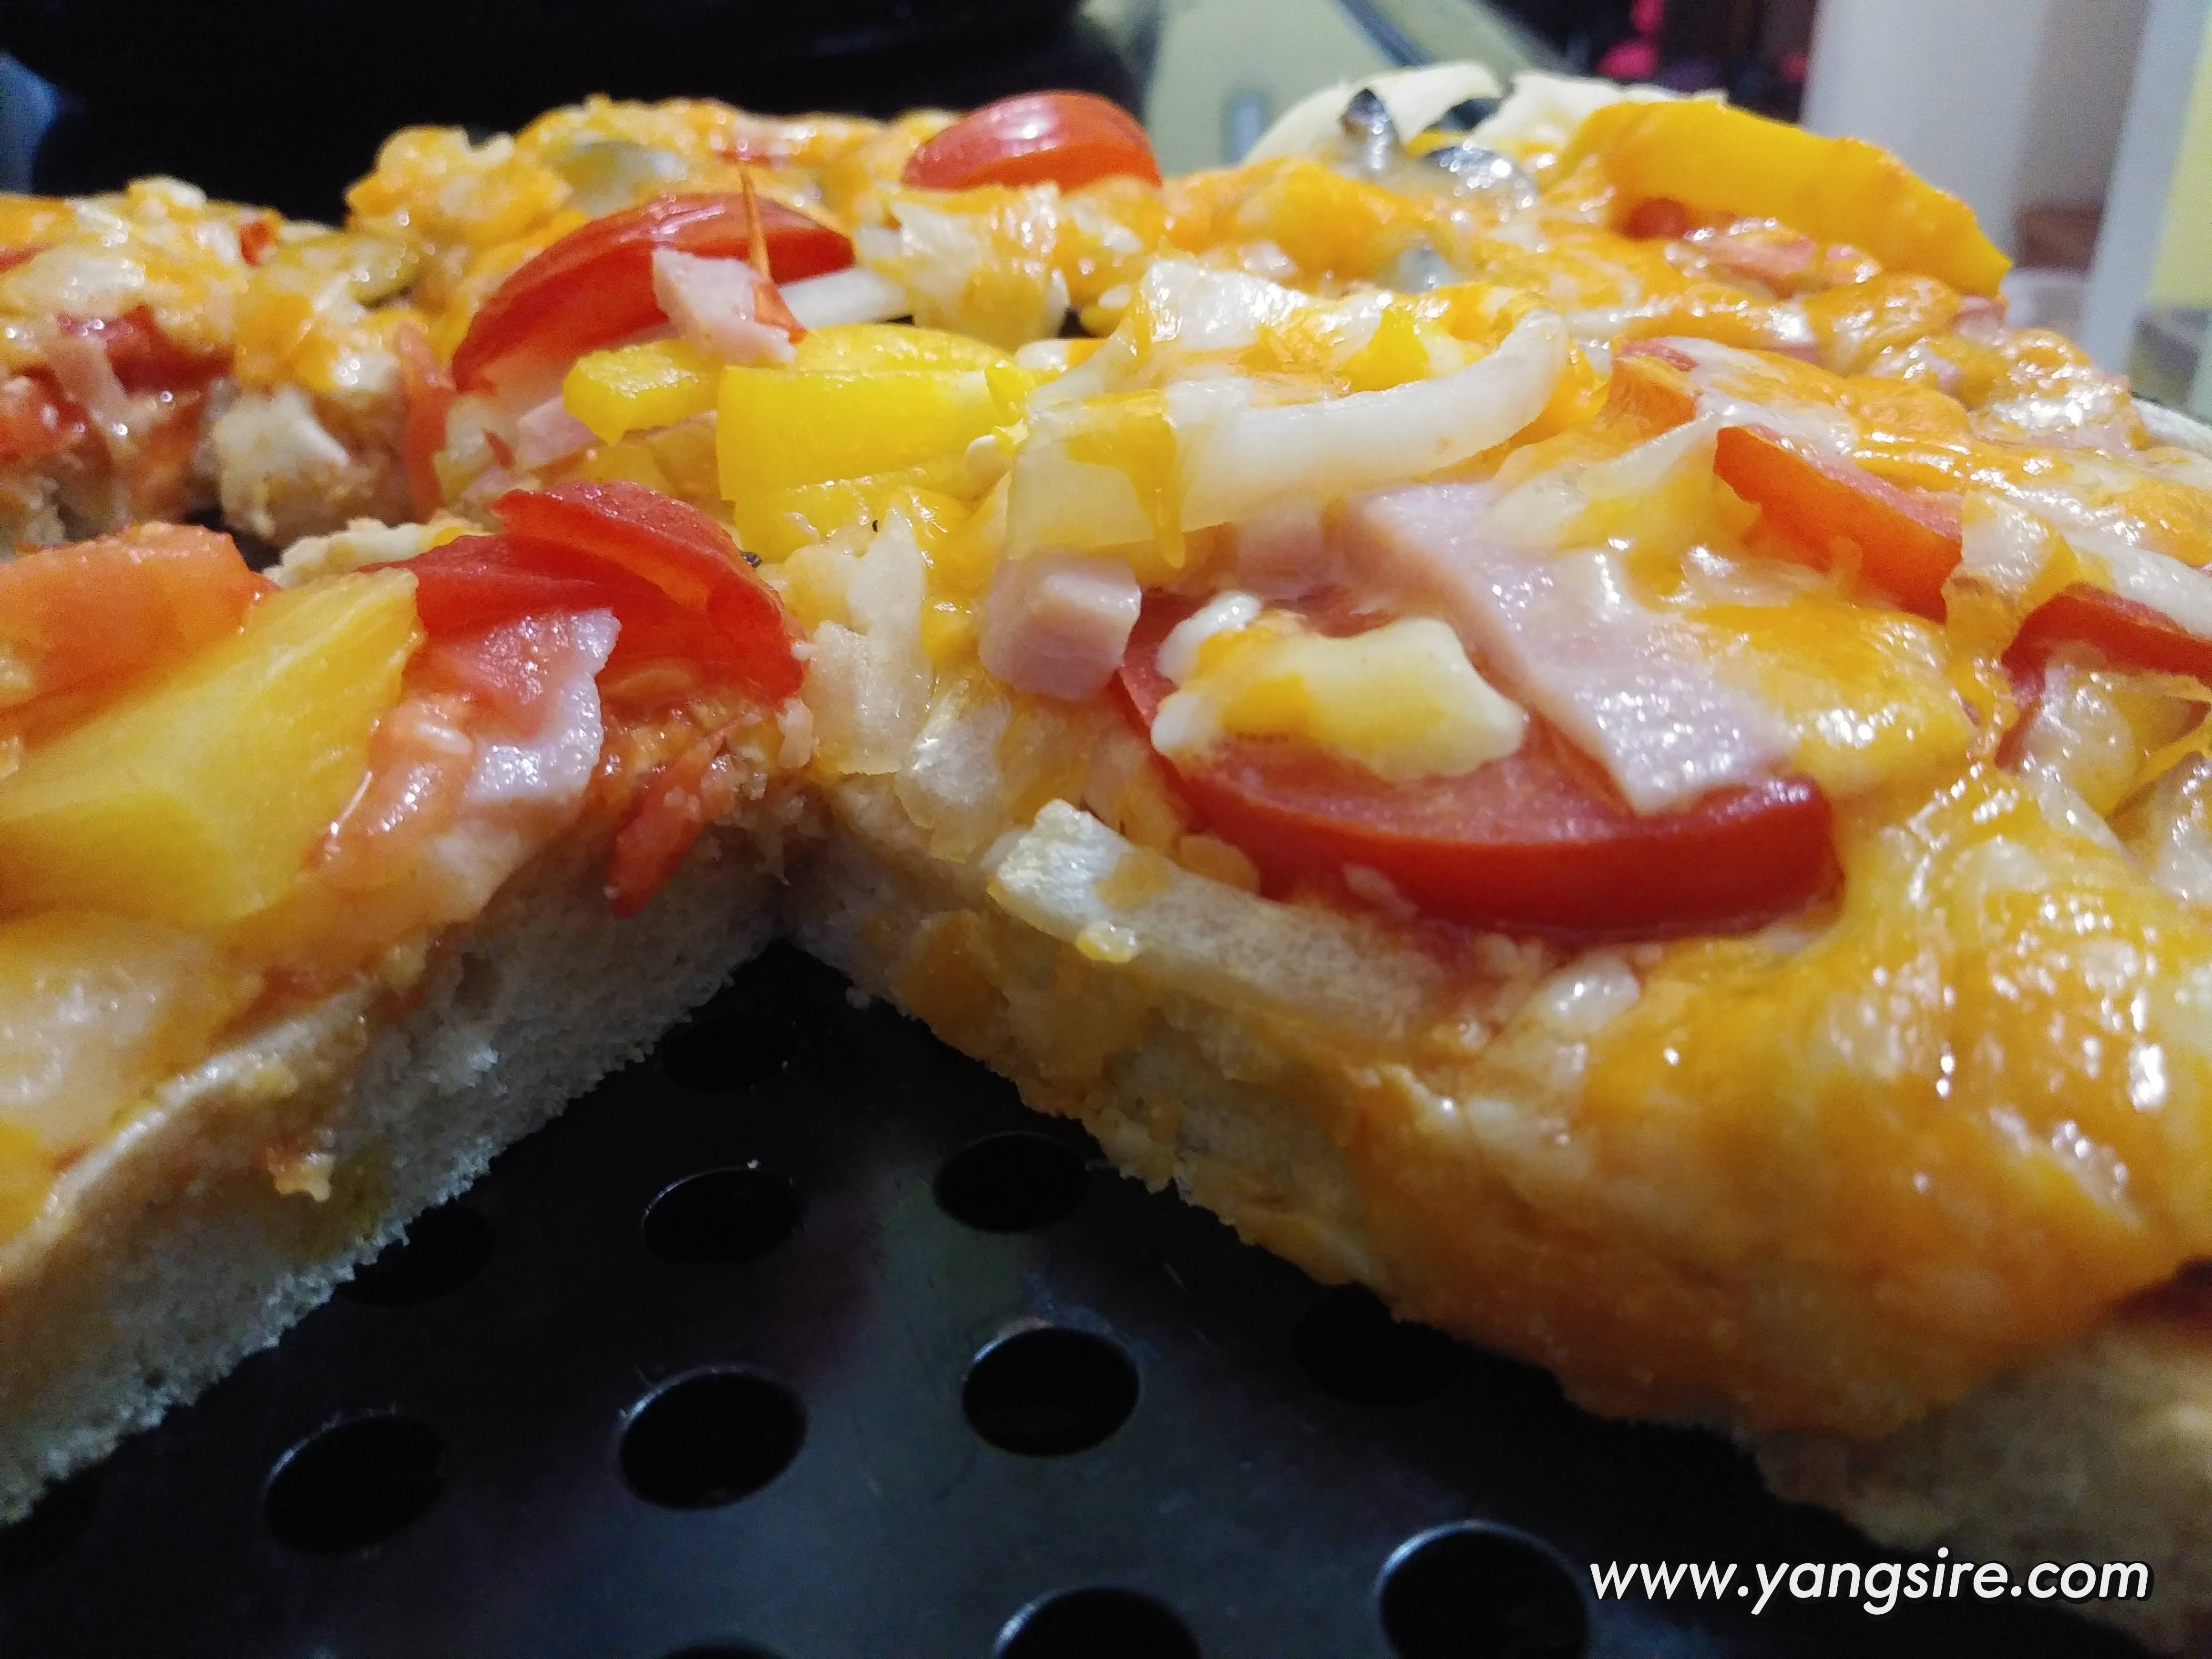 Homemade pizza fully loaded of health toppings.